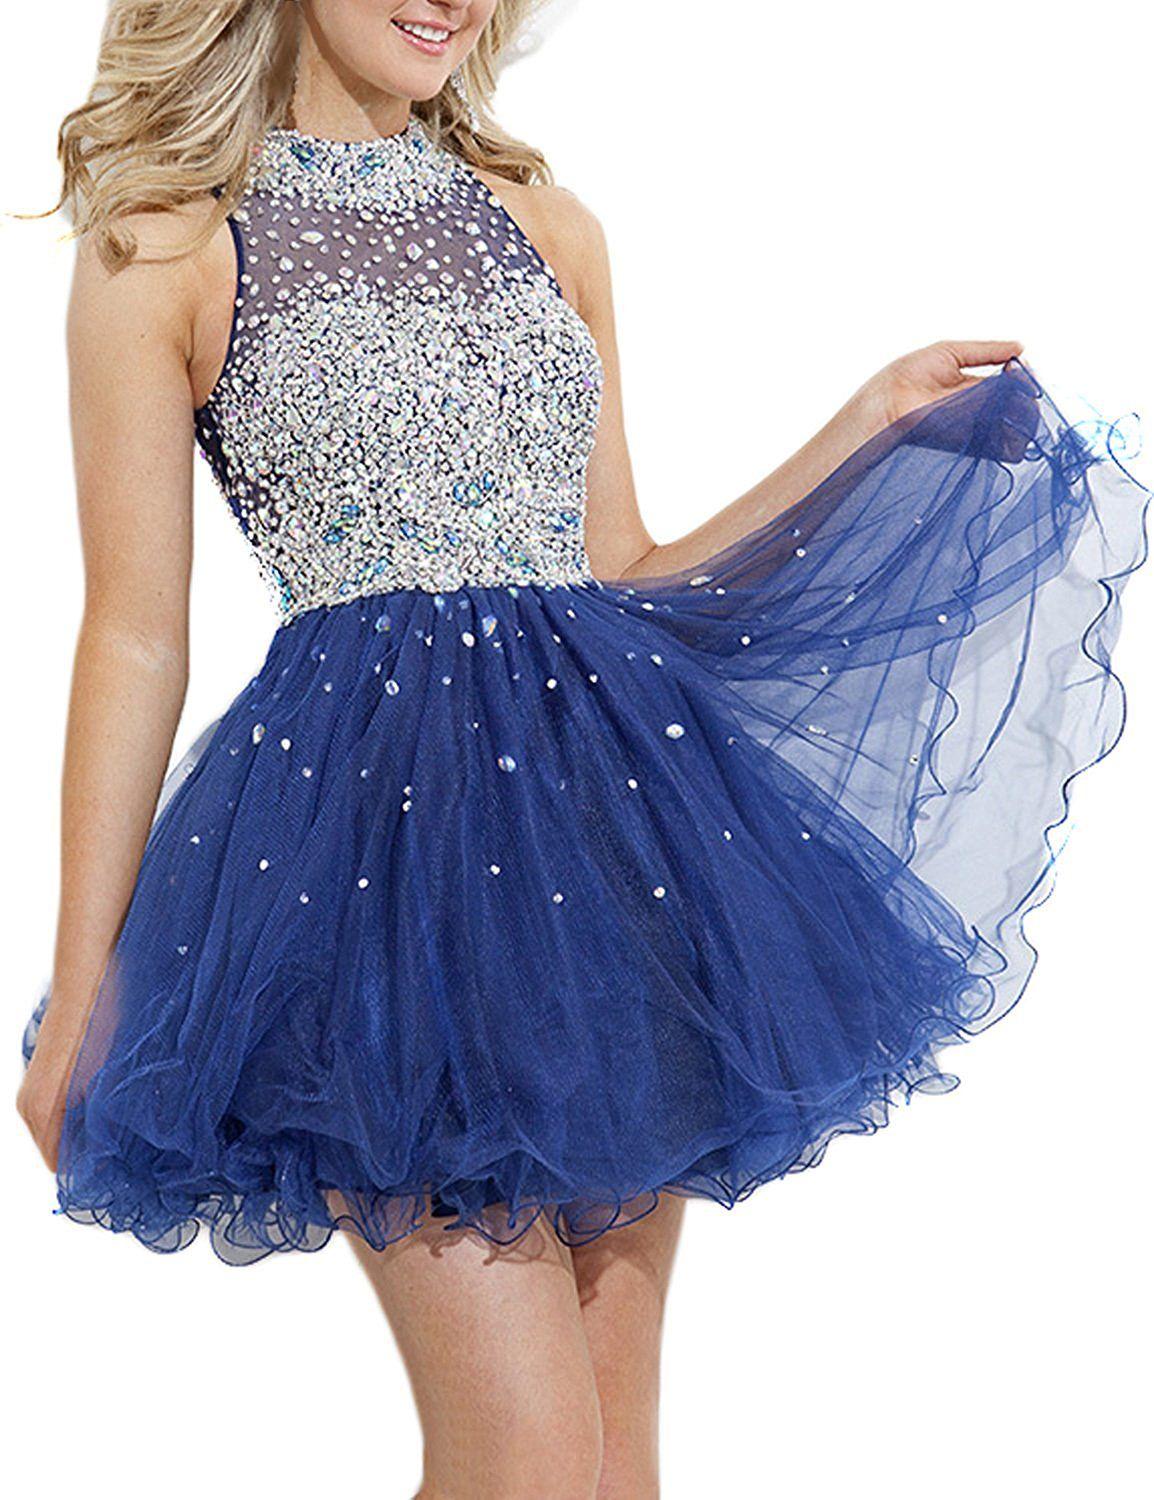 Short Formal Dresses Size 0 - Ficts